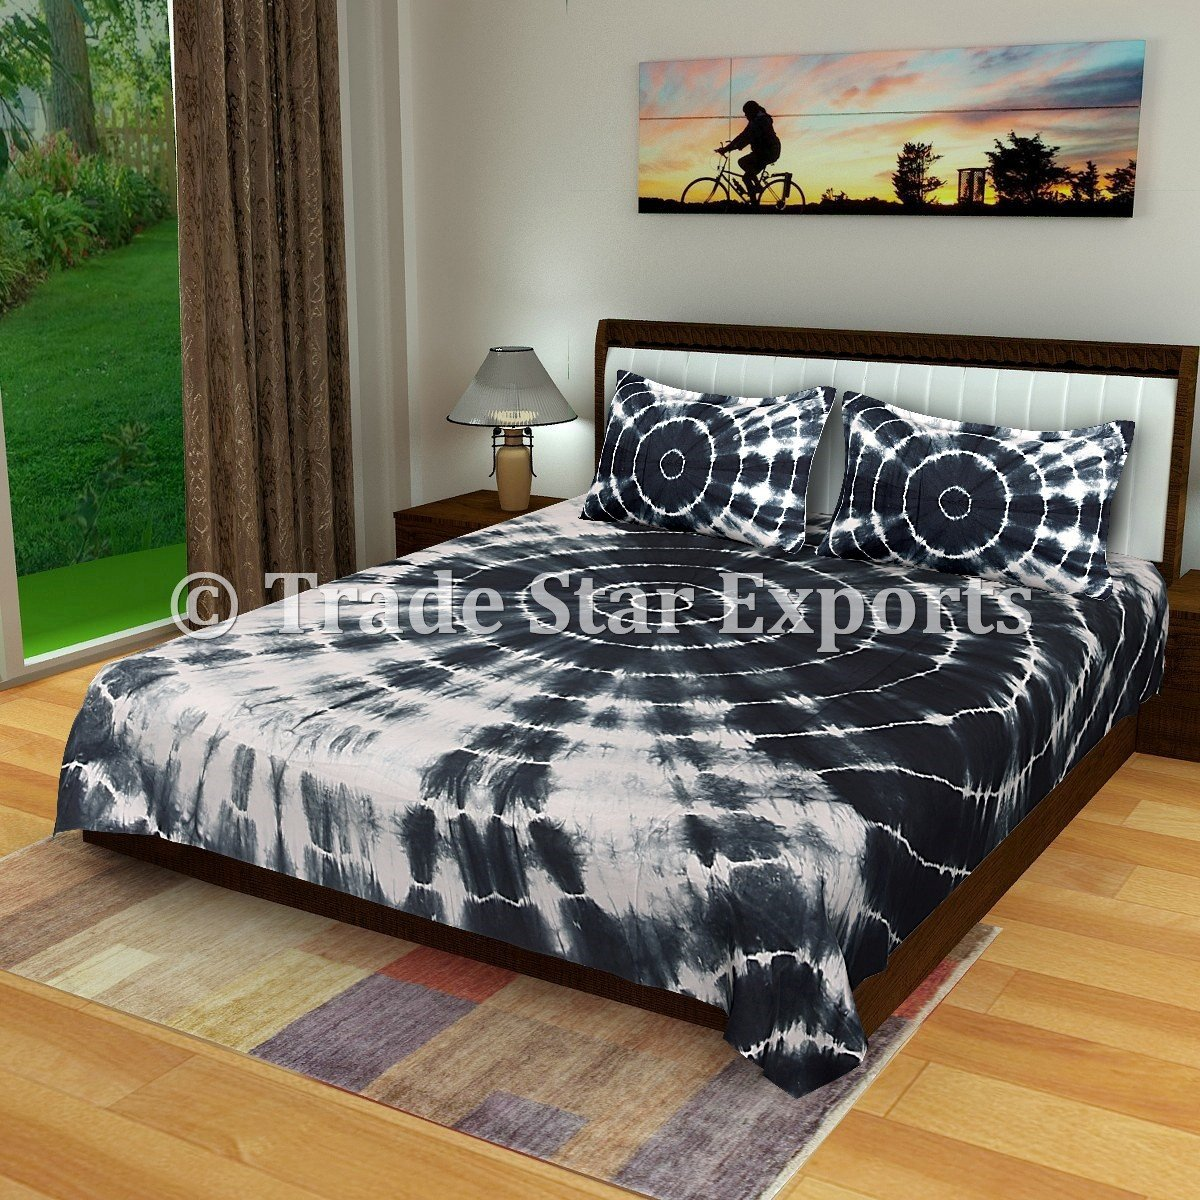 Trade Star Exports Indian Shibori Bedspread, Cotton Bed Cover, Tie Dye Queen Bedding Set, Handmade Bed Sheet with 2 Pillow Cases (Pattern 2)